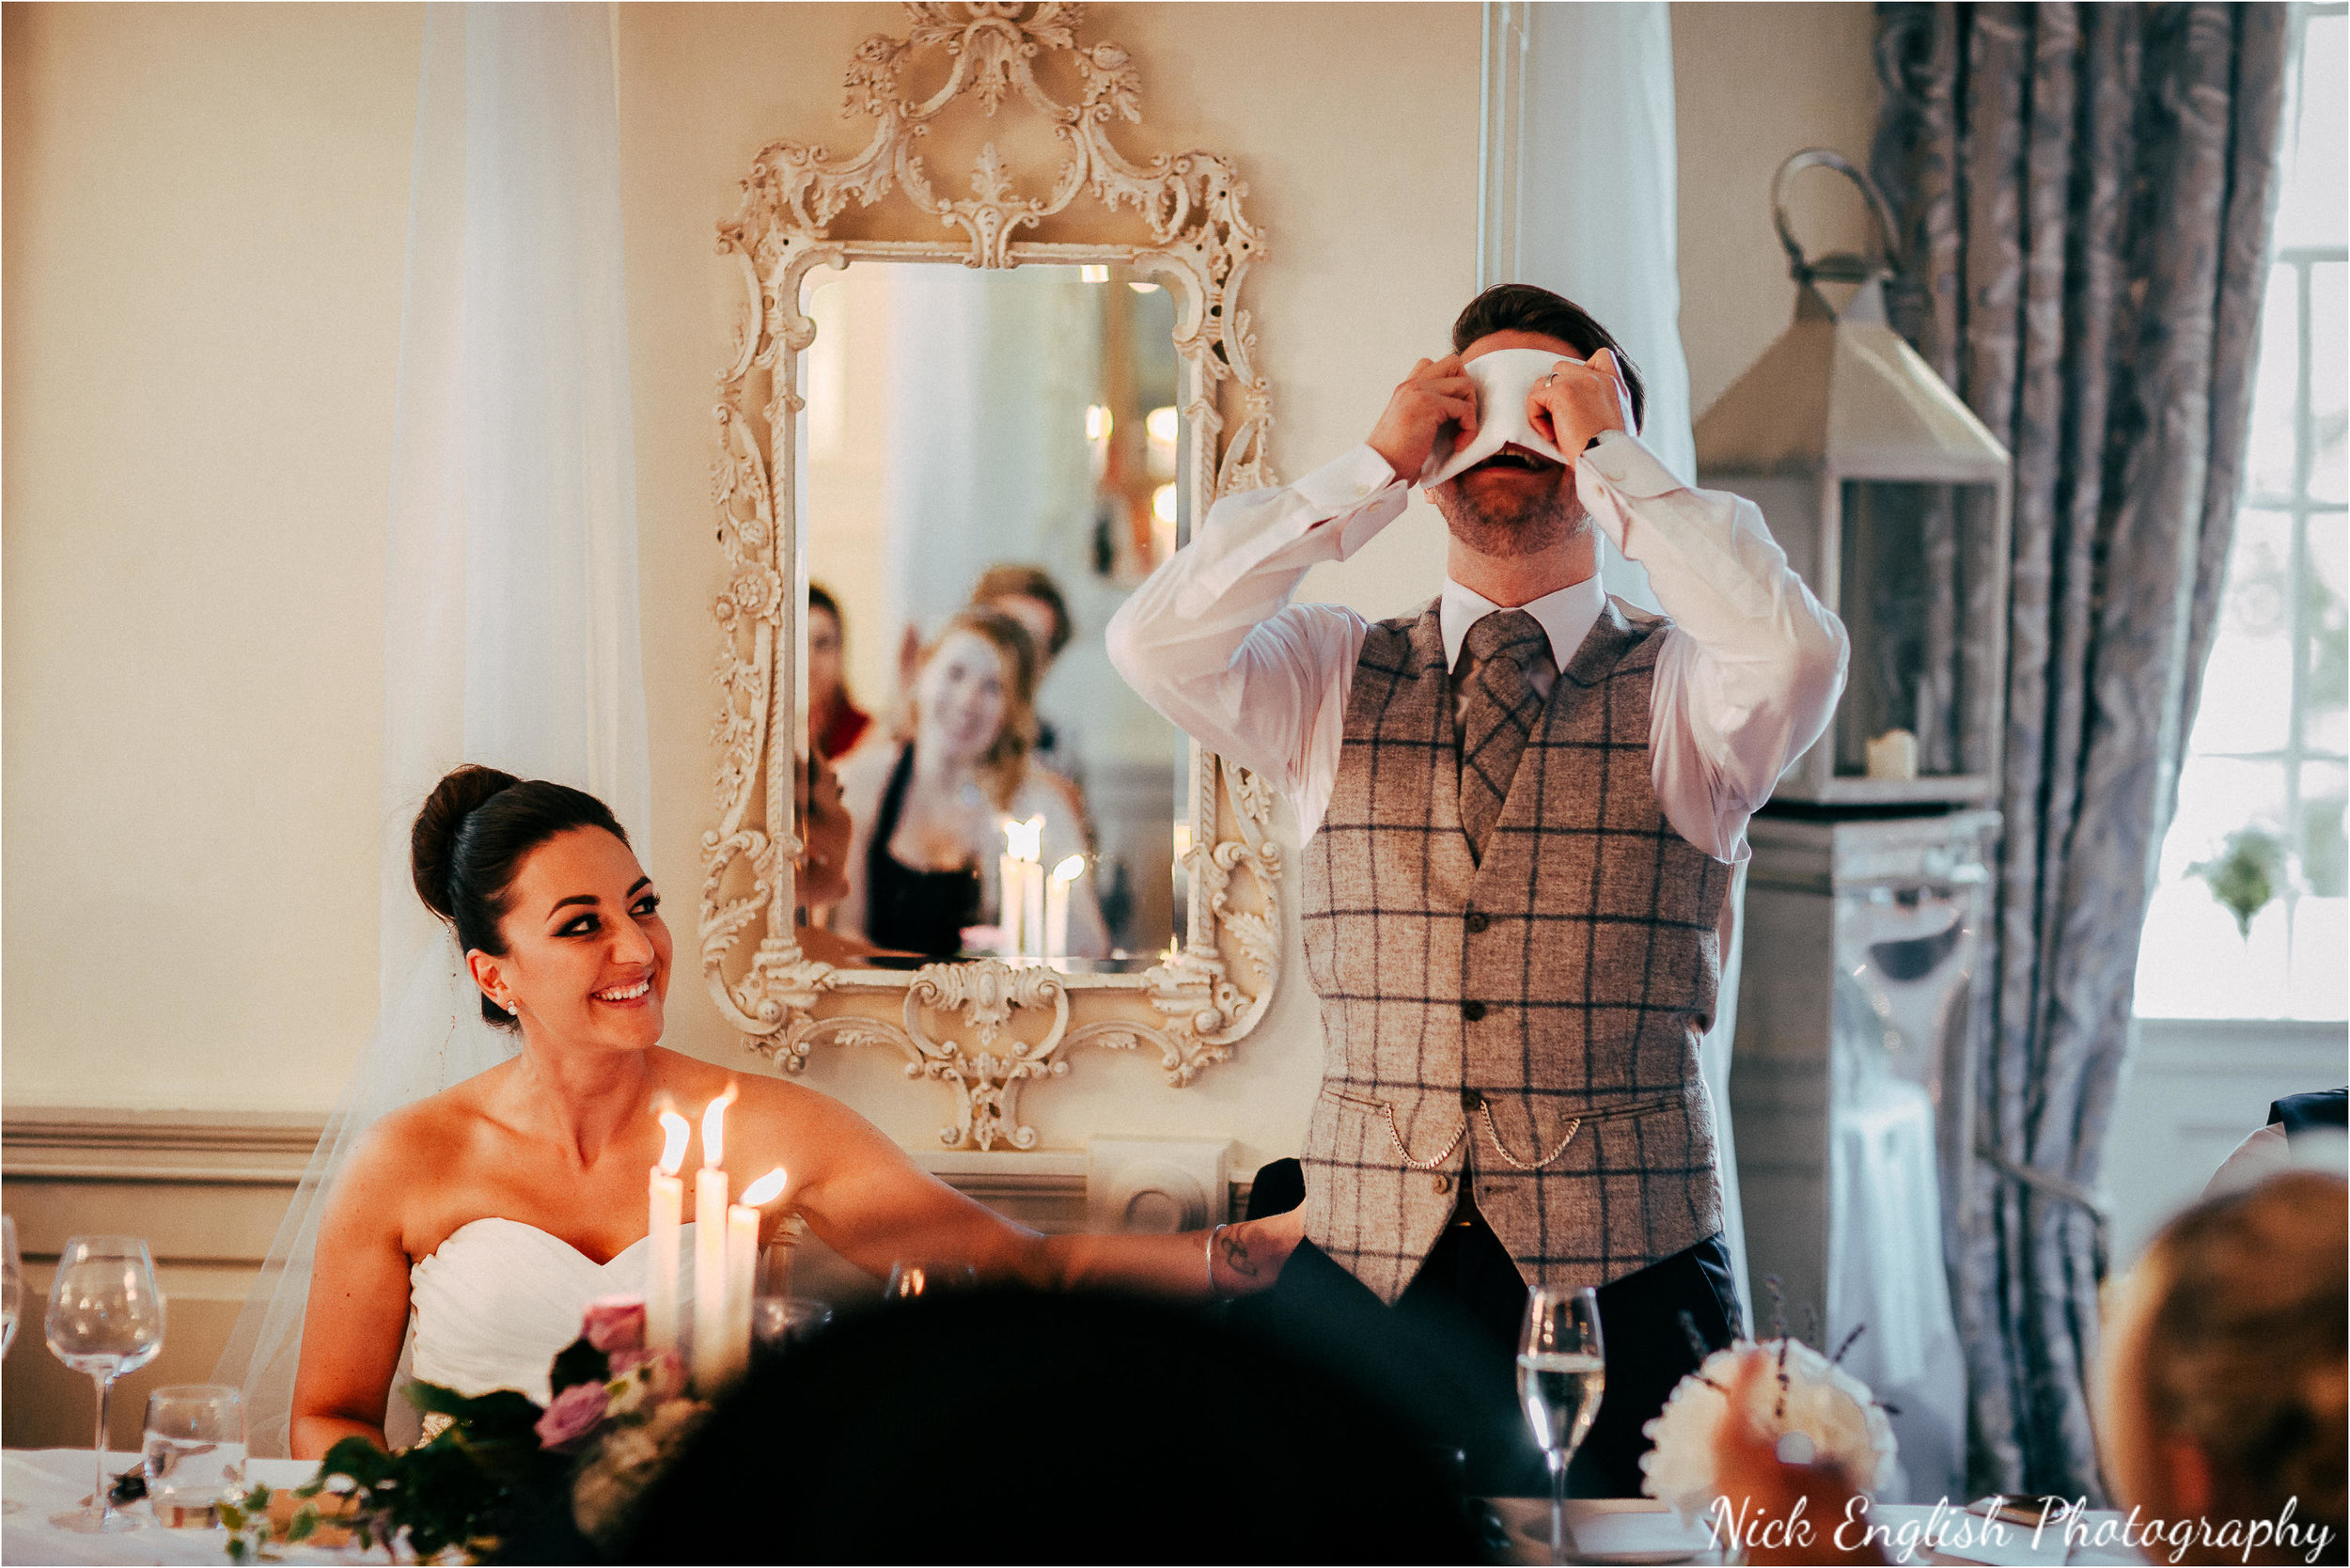 Eaves_Hall_Wedding_Photographs_Nick_English_Photography-194.jpg